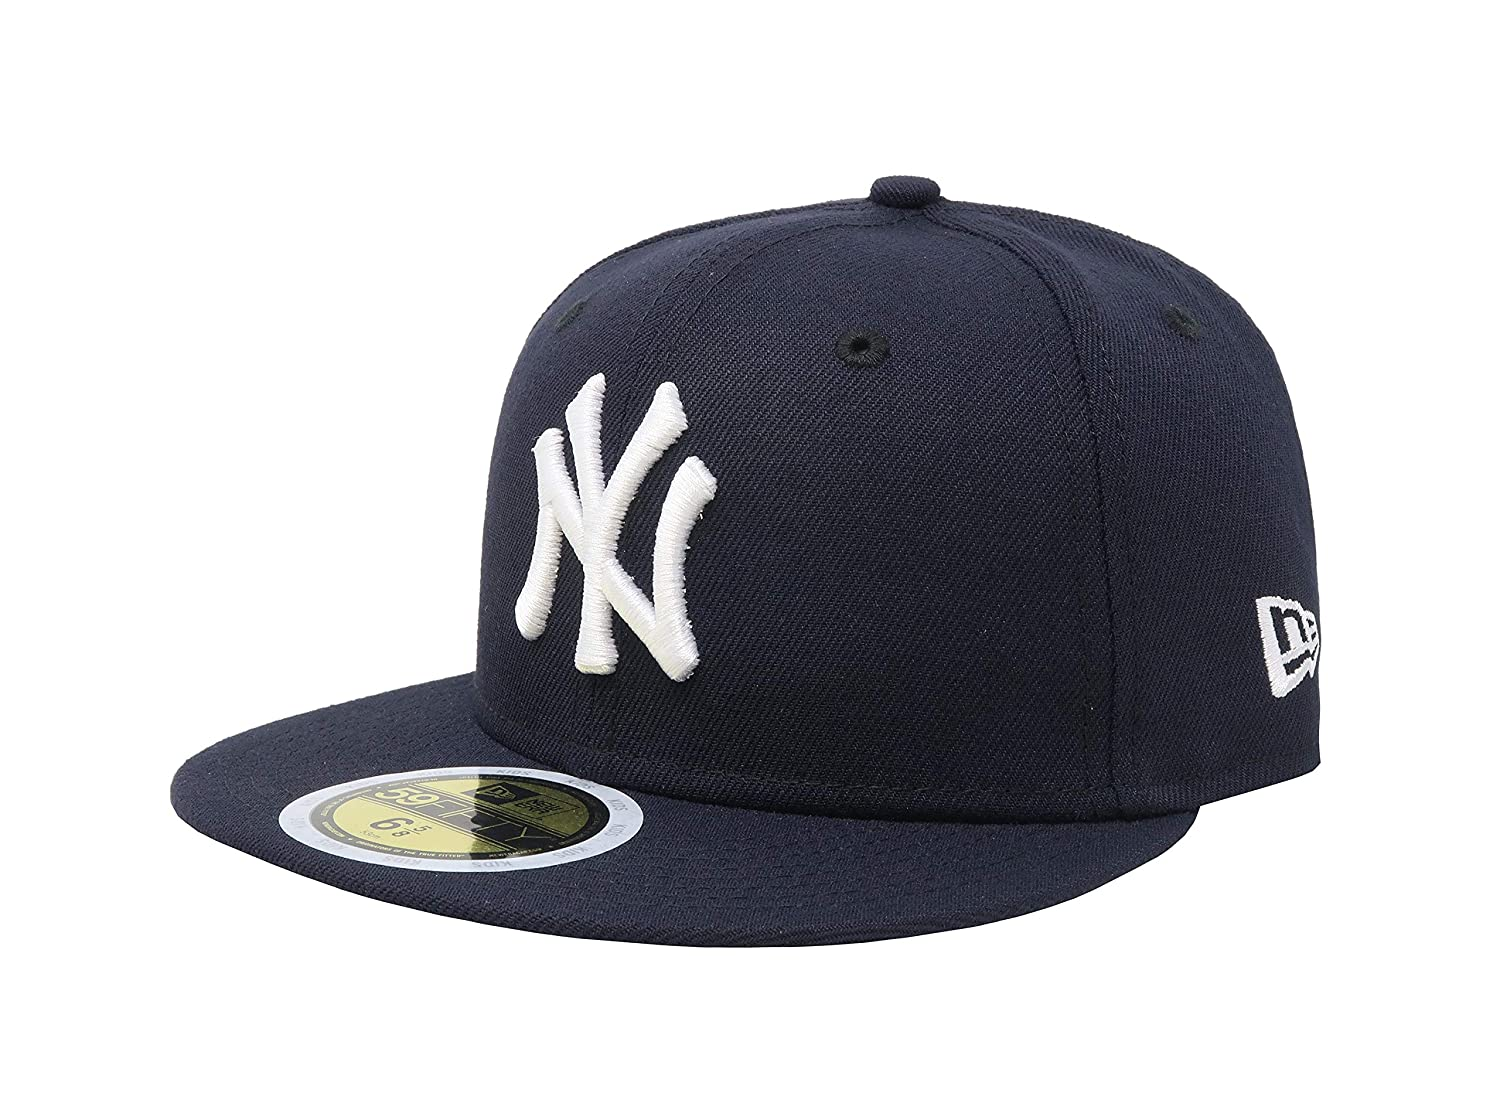 3824c31d7 Amazon.com: ON-FIELD COLLECTION Kids/Youth Yankees 59Fifty Fitted ...